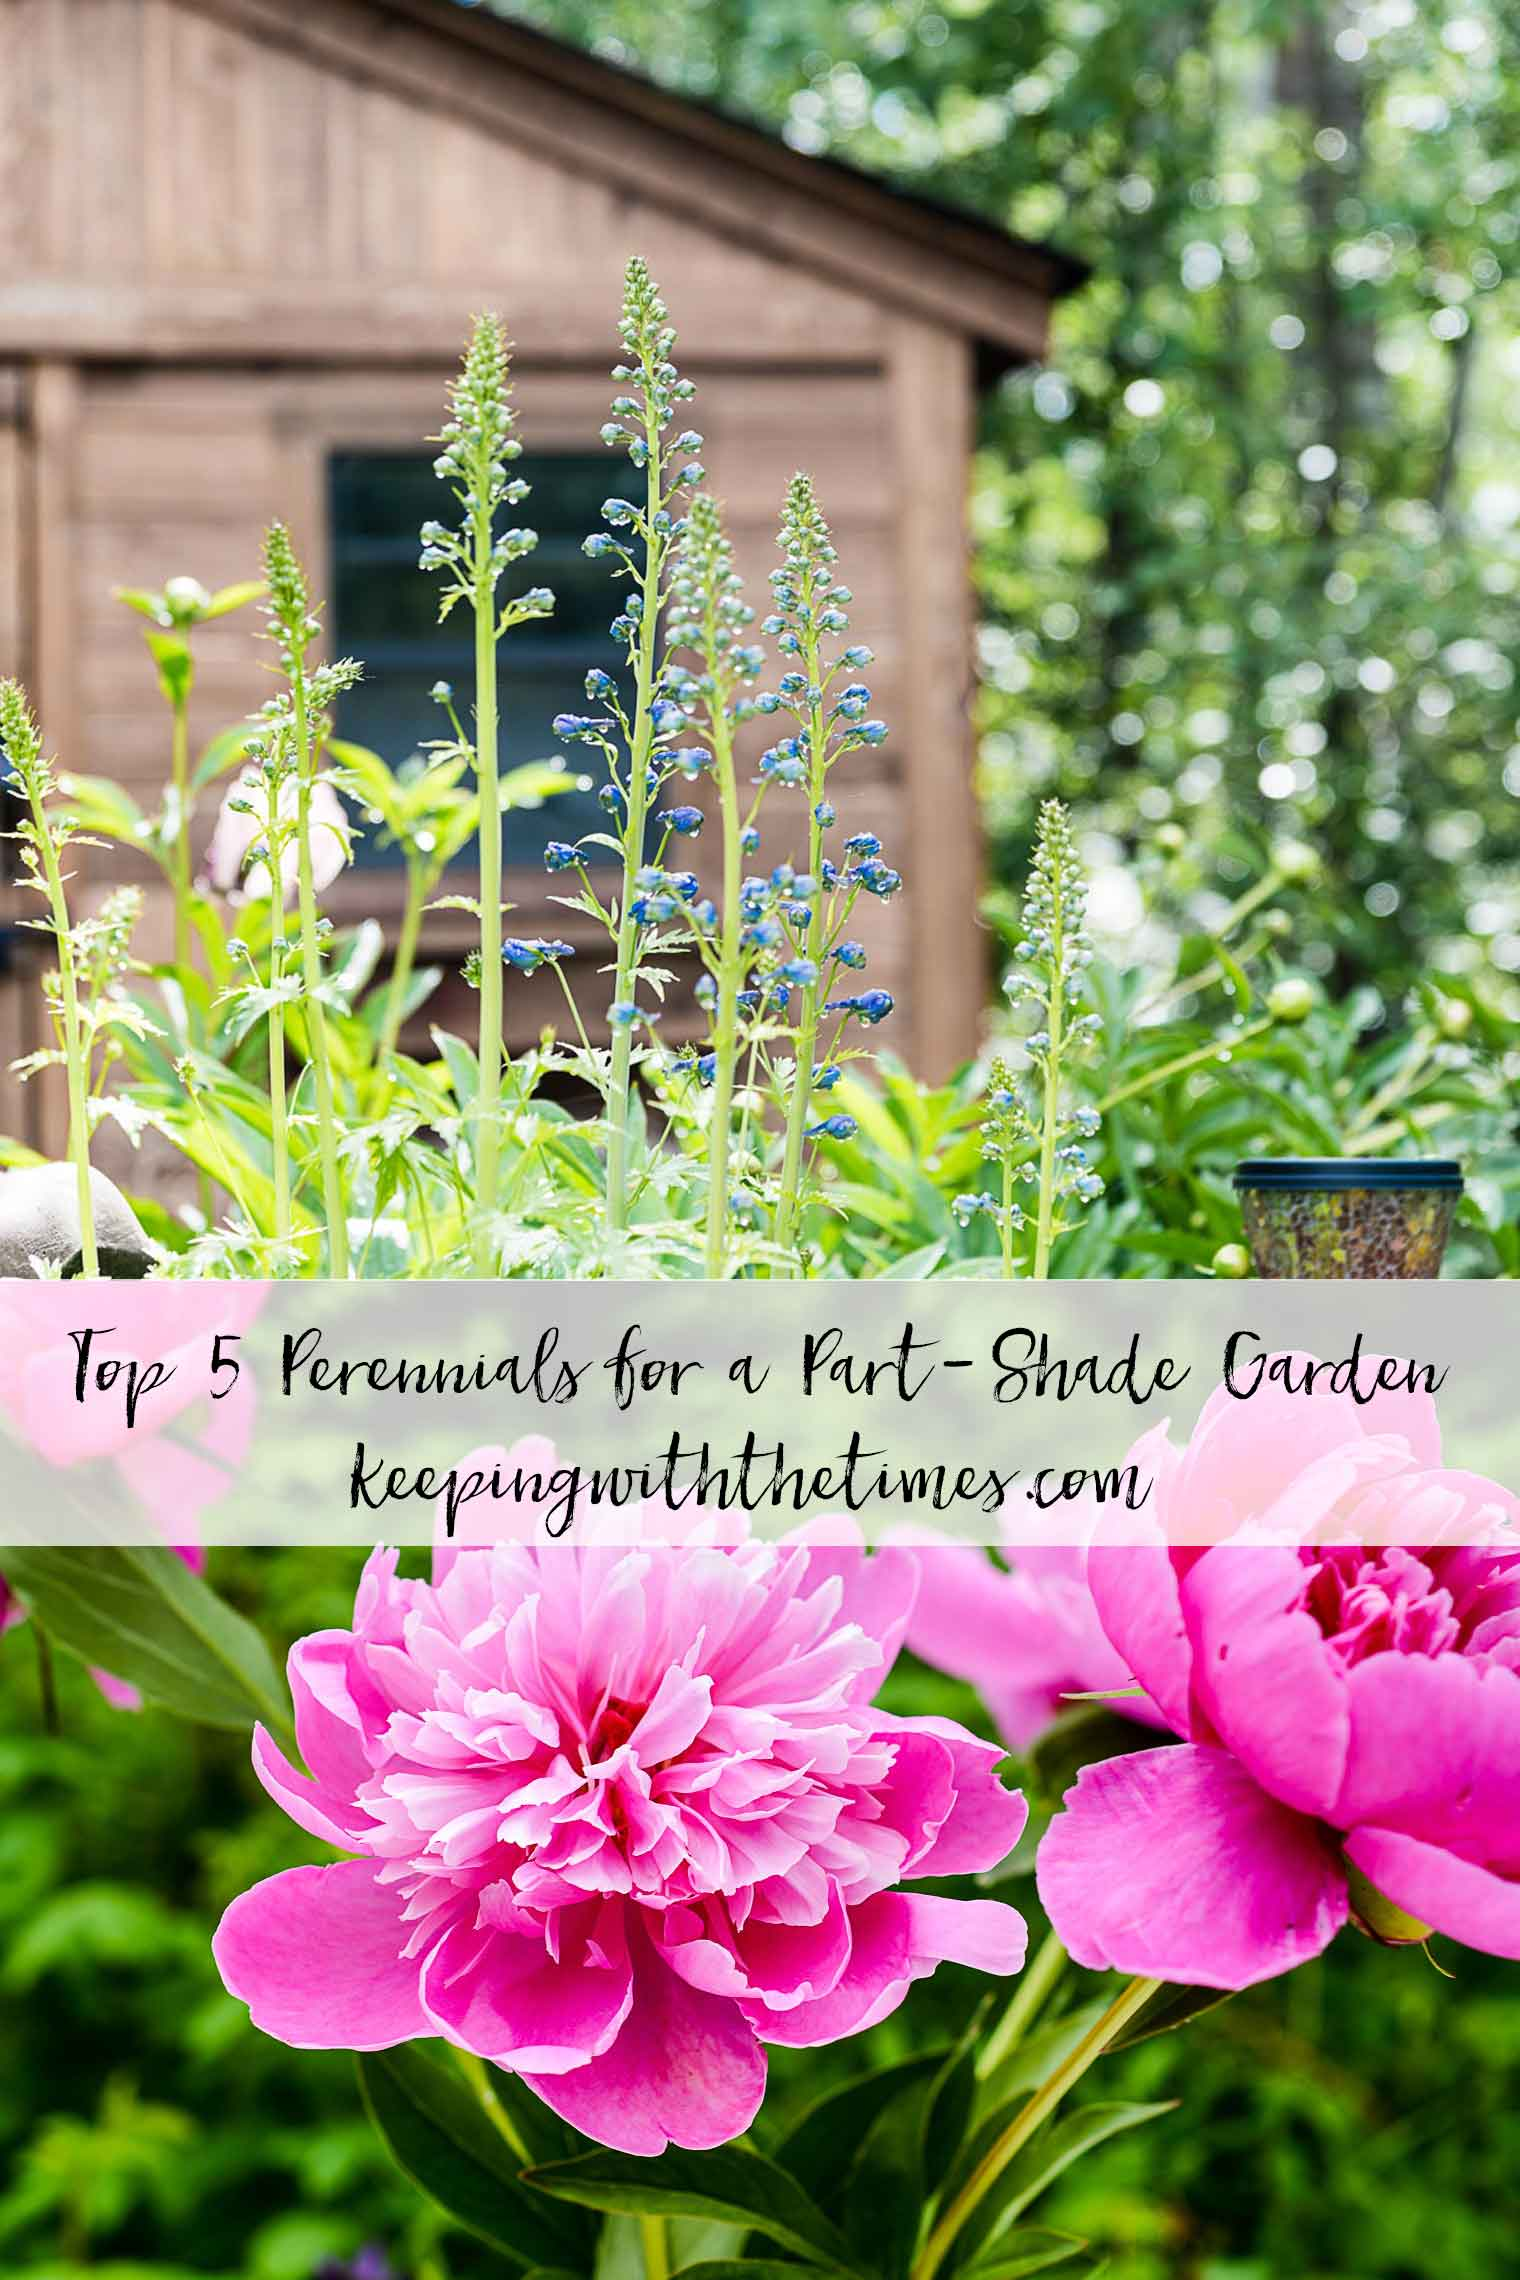 Top 5 Perennials for a Part-Shade Garden; my choices might surprise you!